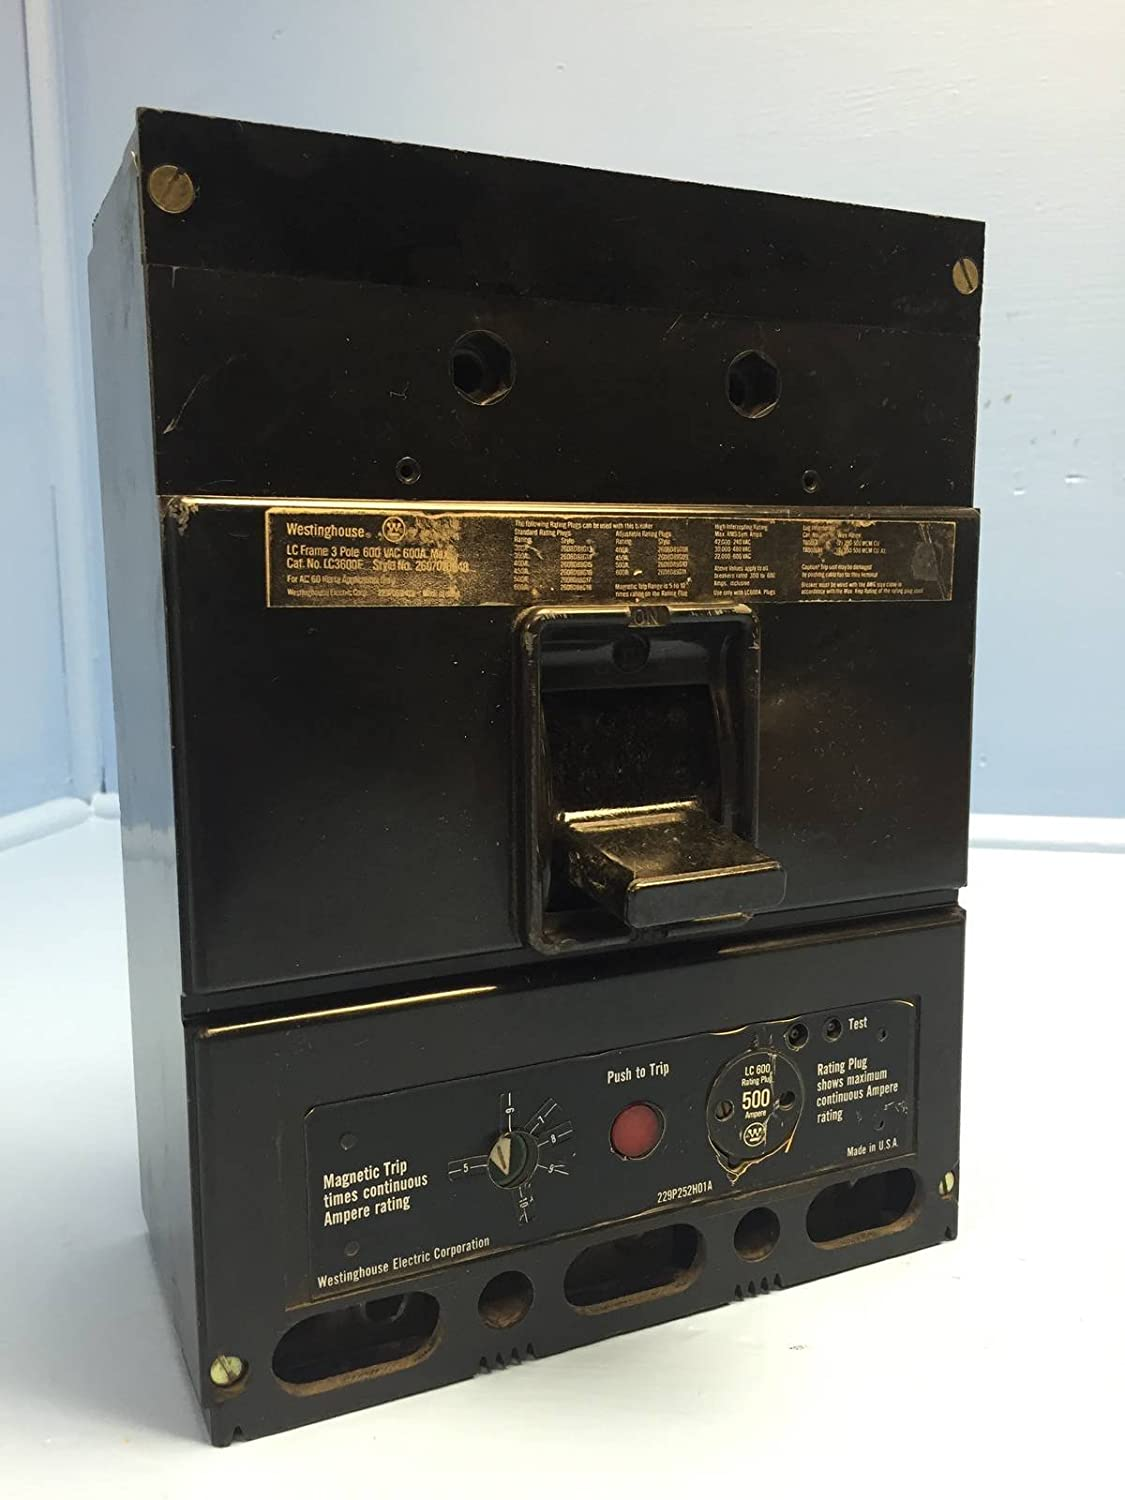 Westinghouse Seltronic LC3600F 600 Amp Circuit Breaker w 400A Plug  Cutler-Hammer: Amazon.com: Industrial & Scientific